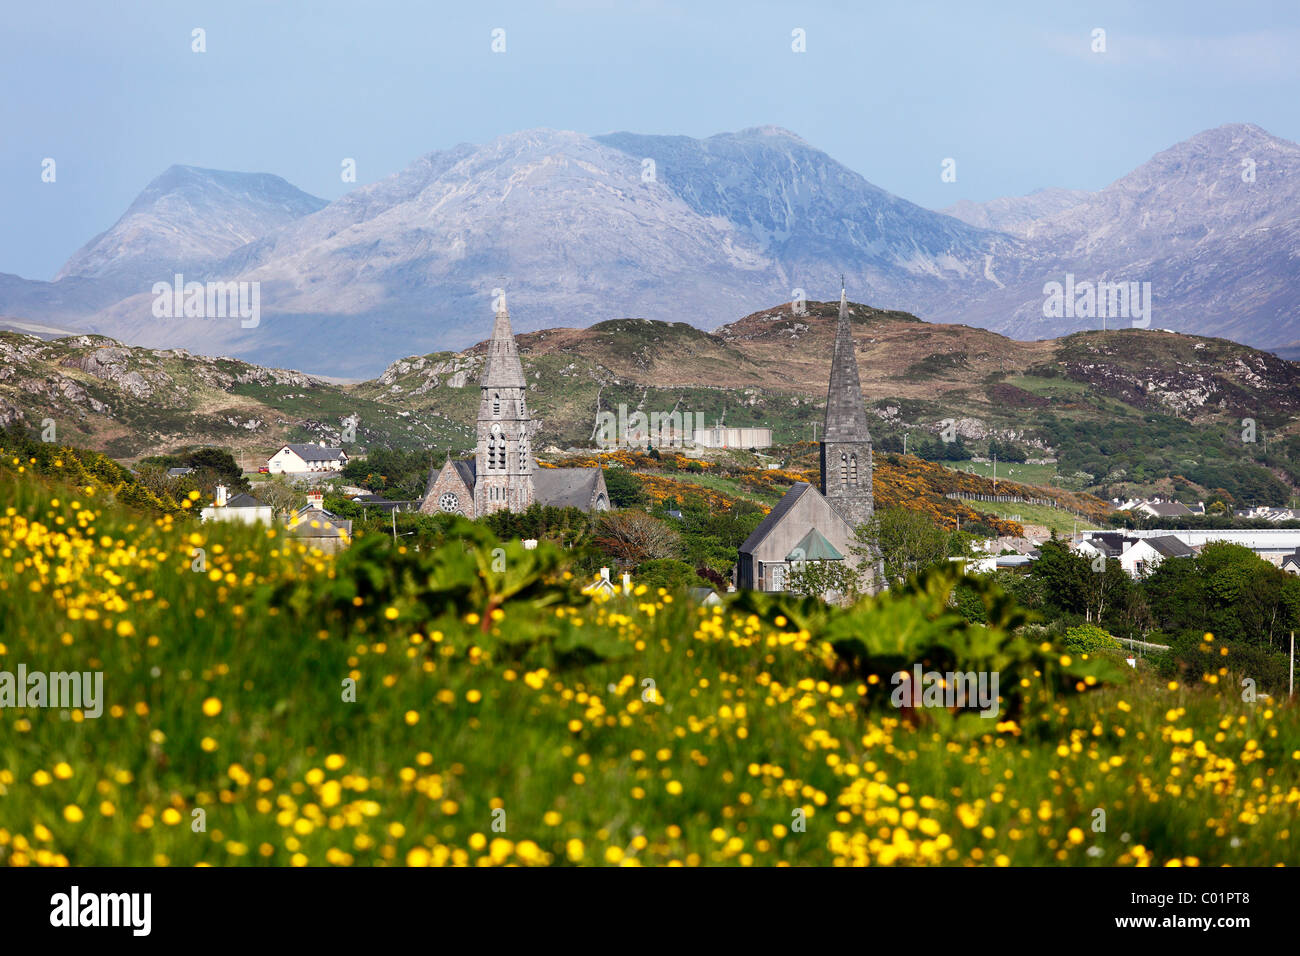 Clifden, Connemara, County Galway, Republic of Ireland, Europe - Stock Image